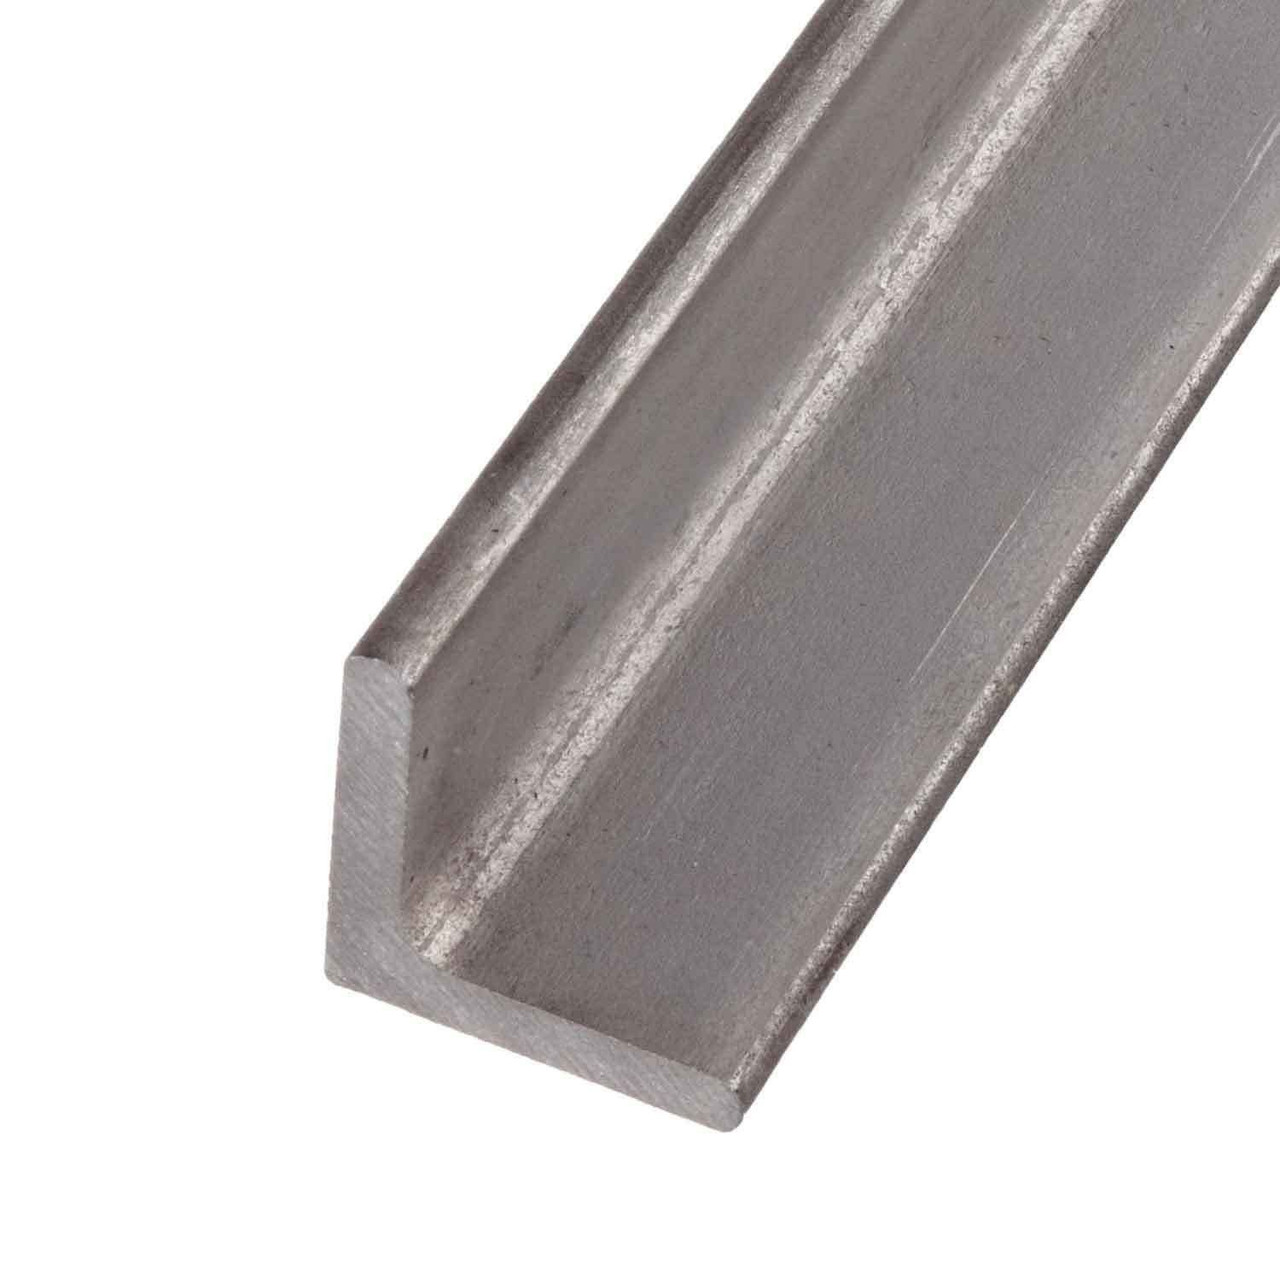 """304 Stainless Steel Angle, 3.5"""" x 3.5"""" x 0.250"""" x 72 inches"""